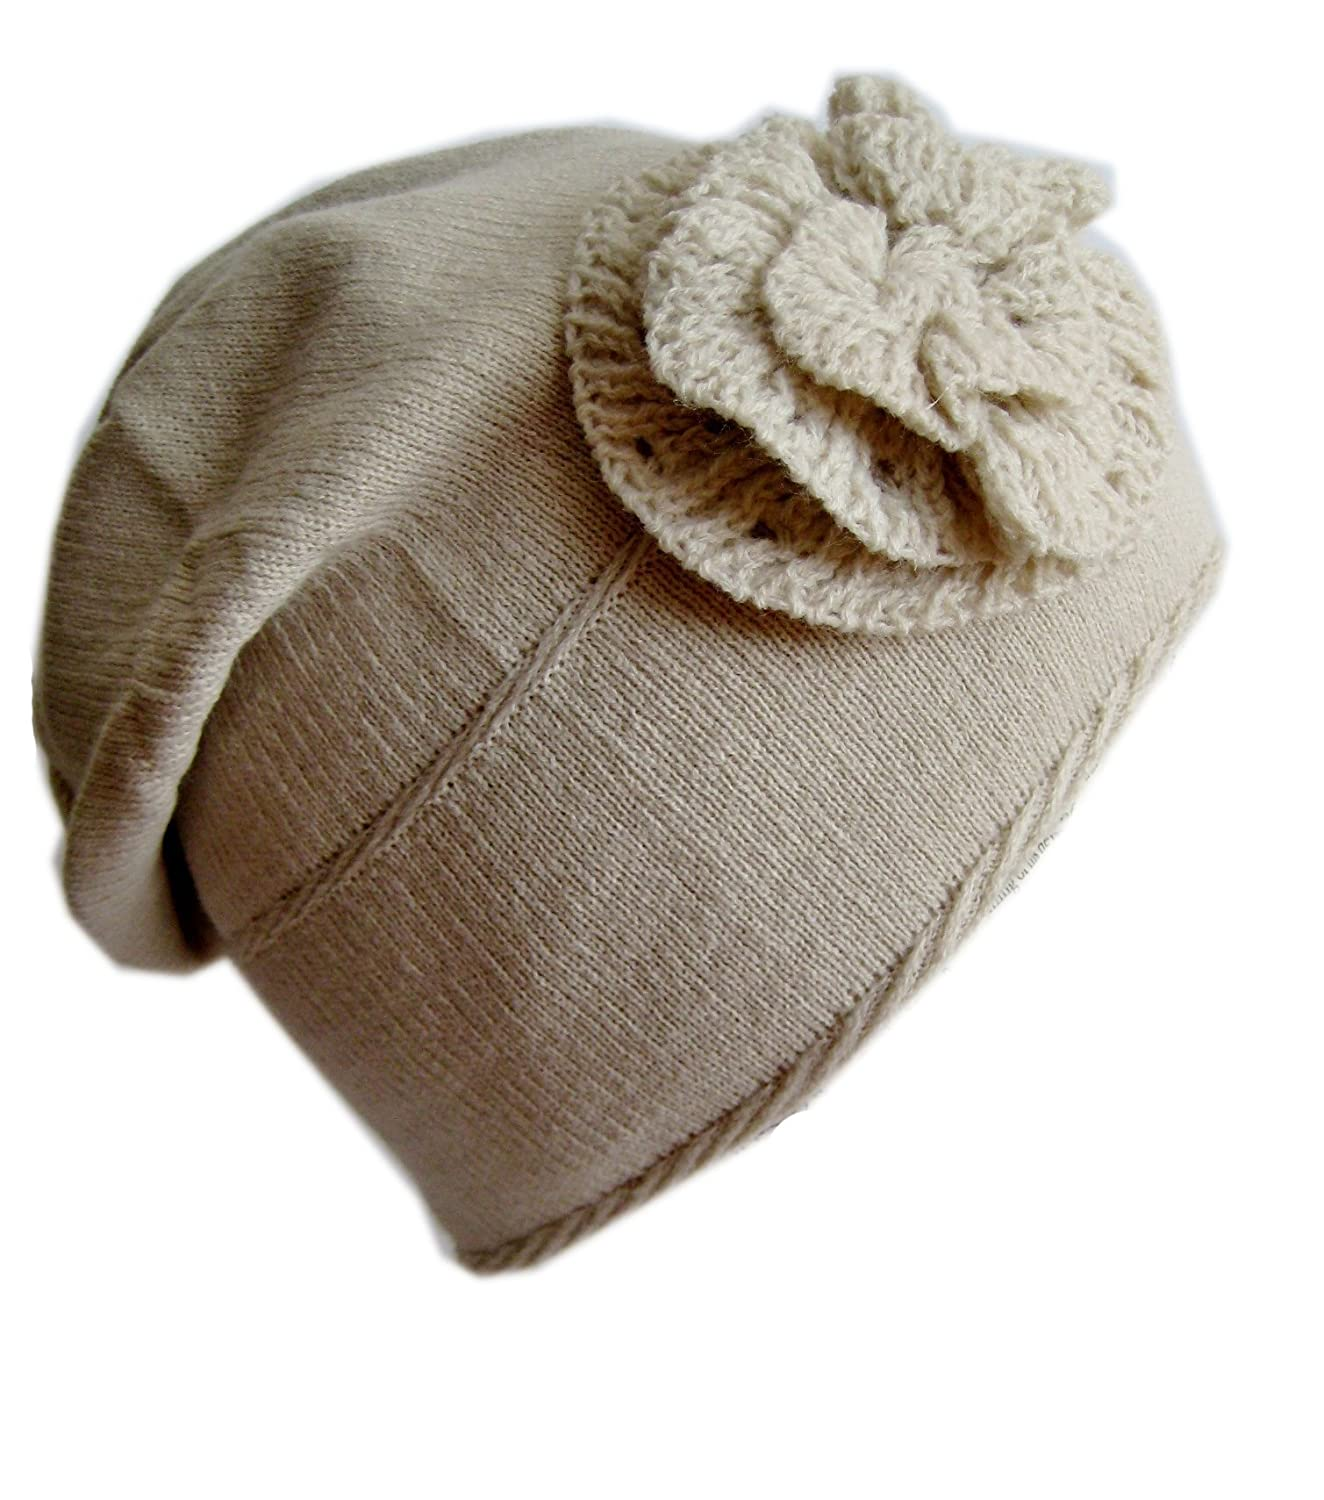 Frost Hats Winter Hat for Women and Girls BEIGE Slouchy Beanie Warm Hat Ski Beanie  Frost Hats One Size Beige at Amazon Women s Clothing store  c2d279f4025